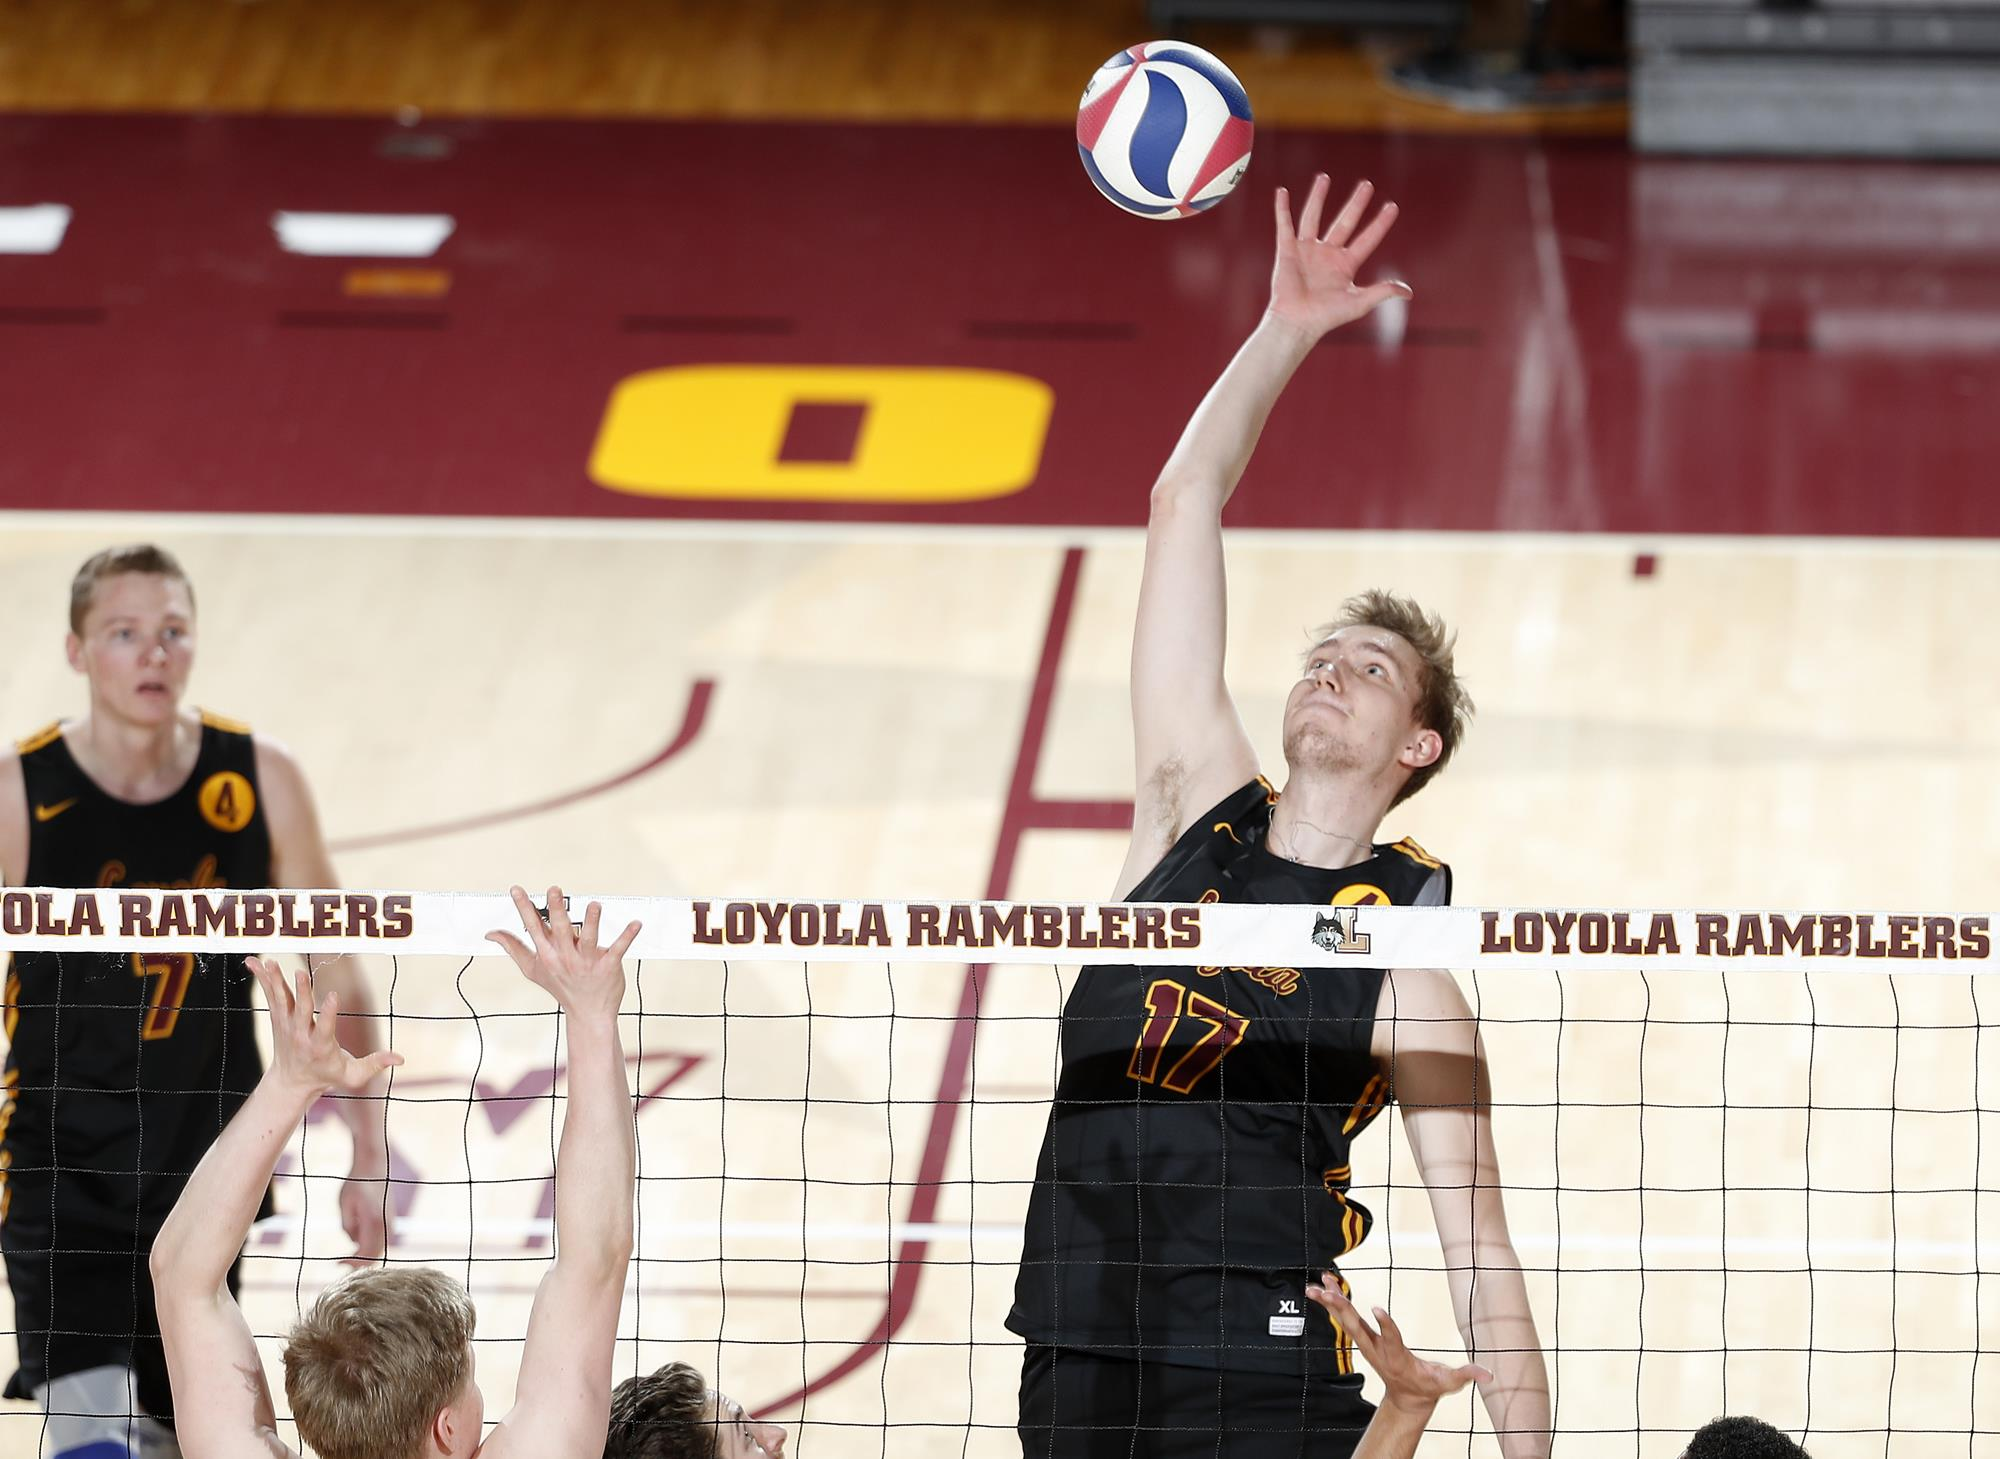 anton frank men's volleyball loyola university chicago frank waltman image frank woltmann #12